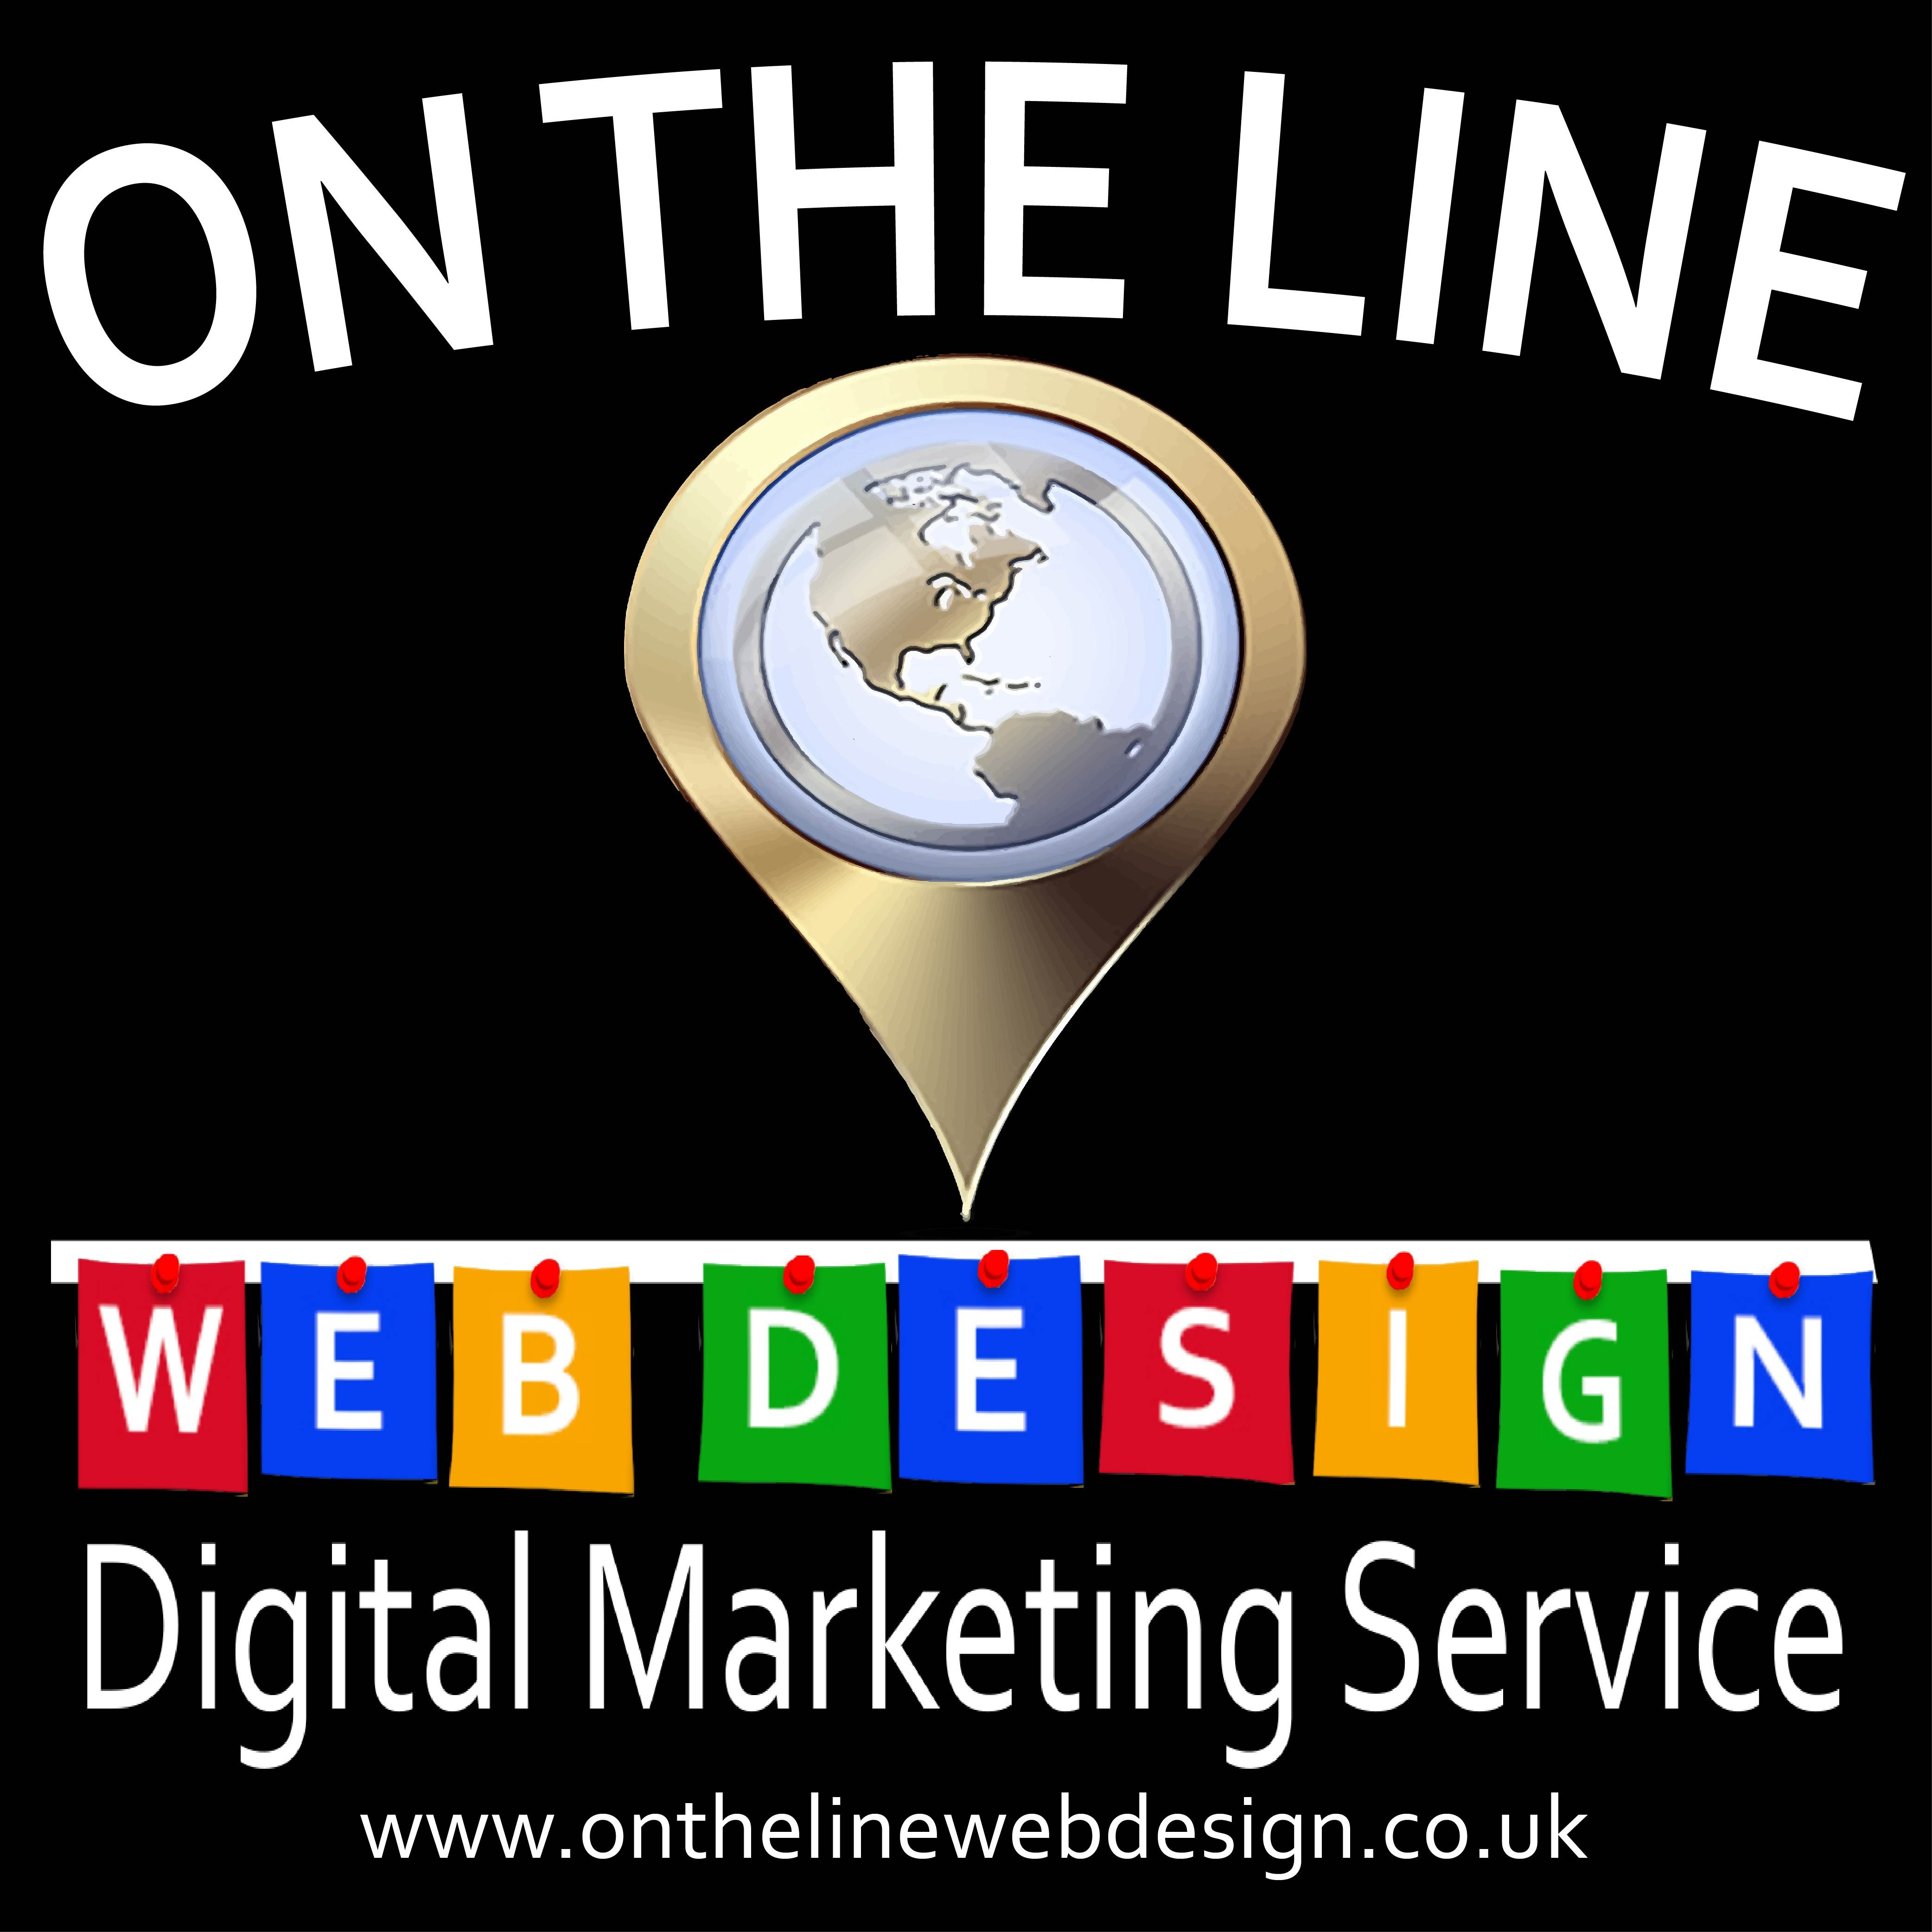 A Local Web Design And Digital Marketing Company For Local Businesses And Sole Traders Digital Marketing Digital Marketing Services Digital Marketing Company